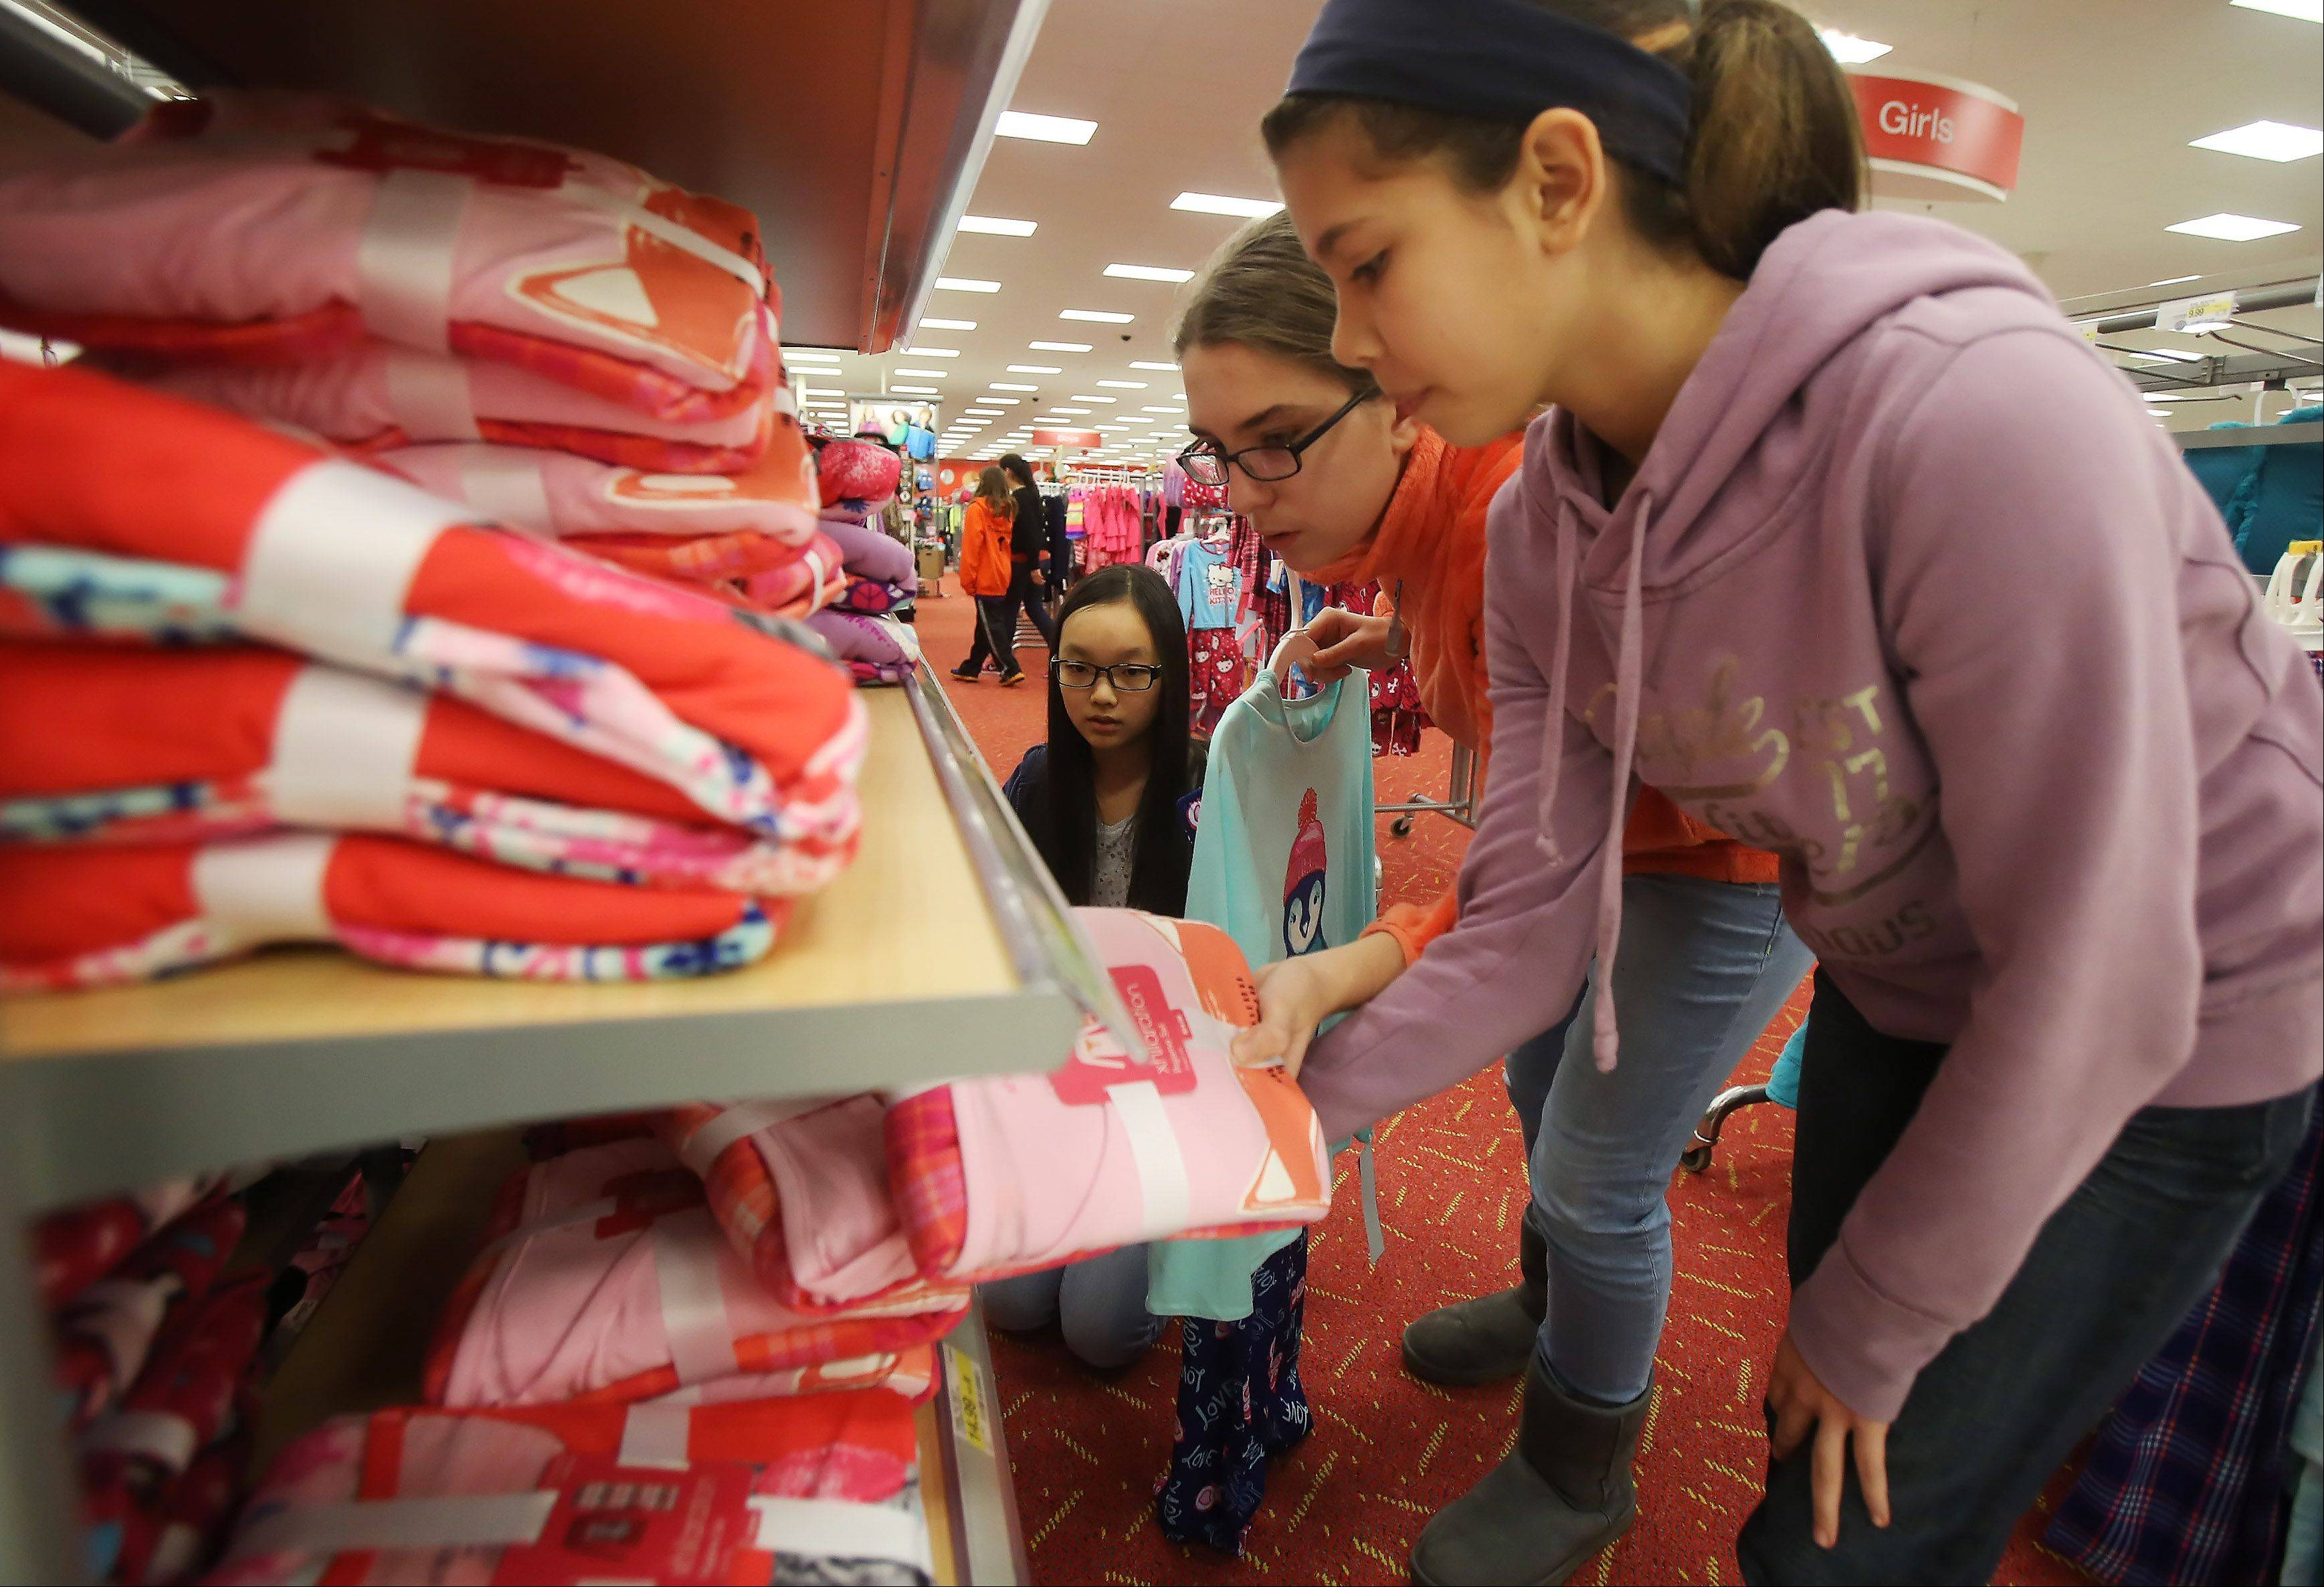 Seventh-graders Stephanie Rivas, right, Julia Sulicka and Anna Lee are among the Carl Sandburg Middle School students buying toys and clothing at Target in Mundelein on Tuesday for a needy family. The school's Community Service Club raised $333 to help the family for the holidays.